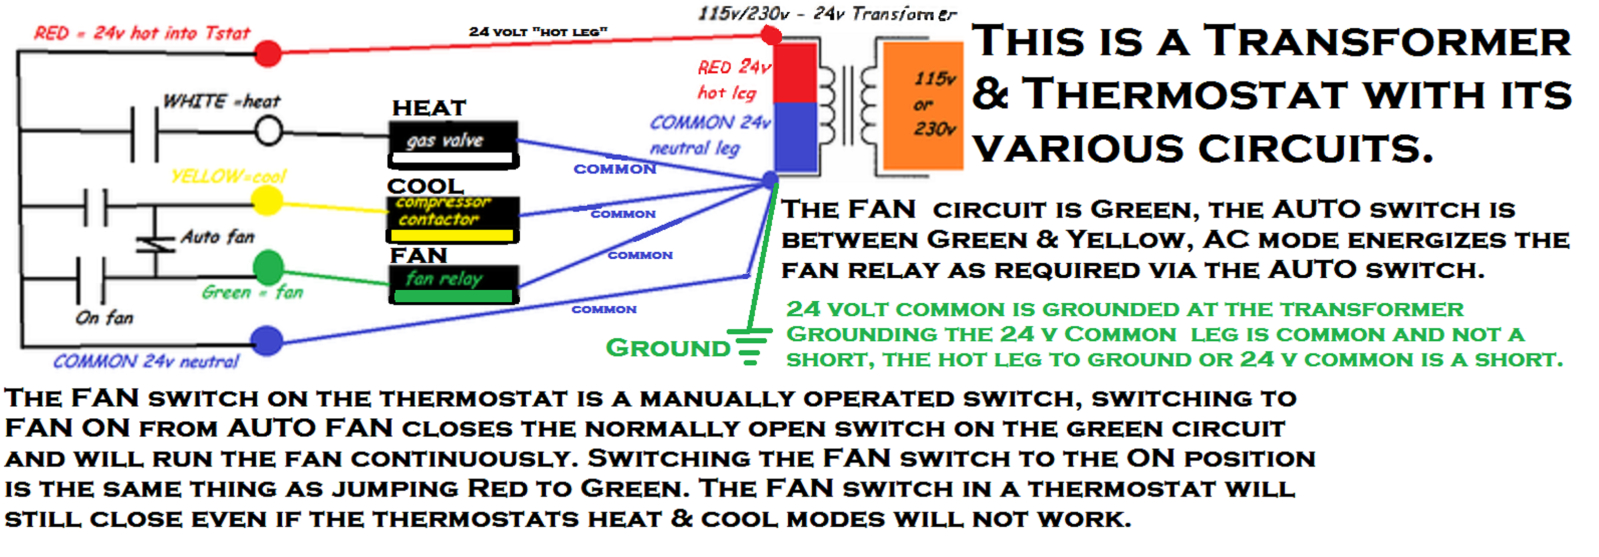 Hvac - How To Move From Rh/rc Thermostat To C Thermostat In Ac Only - Honeywell Thermostat Wiring Diagram 3 Wire